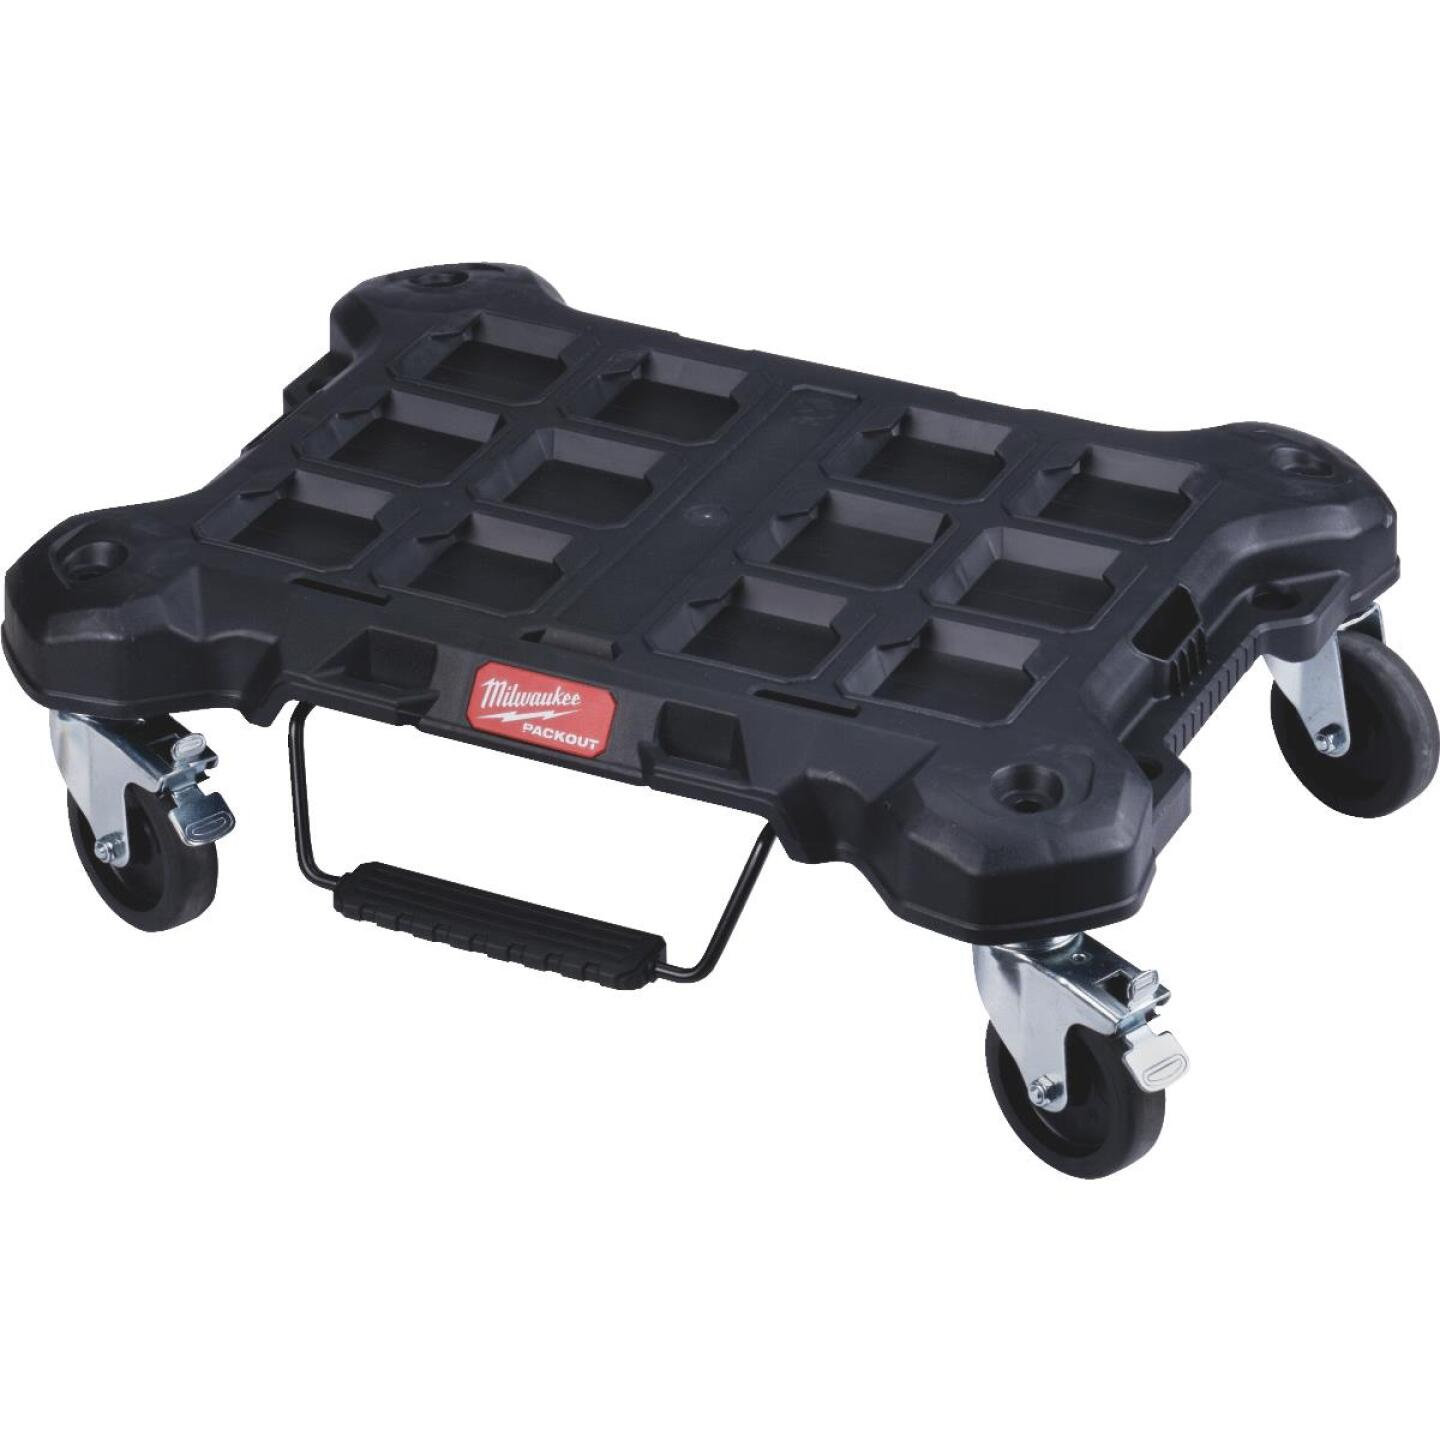 Milwaukee PACKOUT 18.8 In. W x 24.4 In. L Platform Cart, 250 Lb. Capacity Image 1